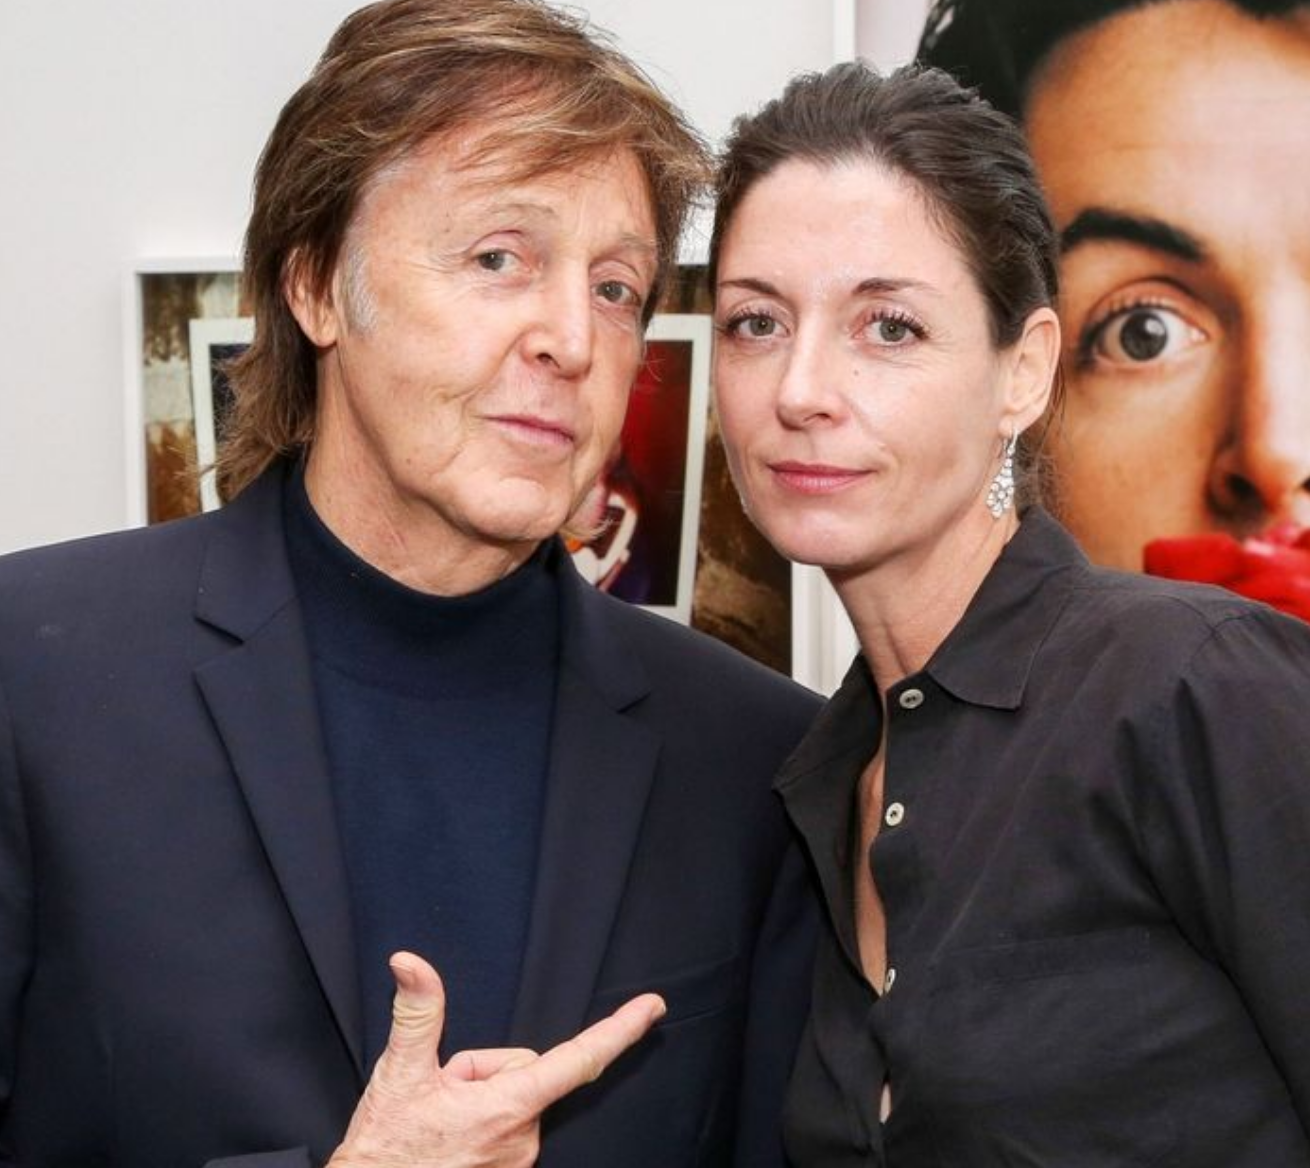 McCartney keen to team up with Liverpool FC for behind the scenes photo project – Liverpool Echo